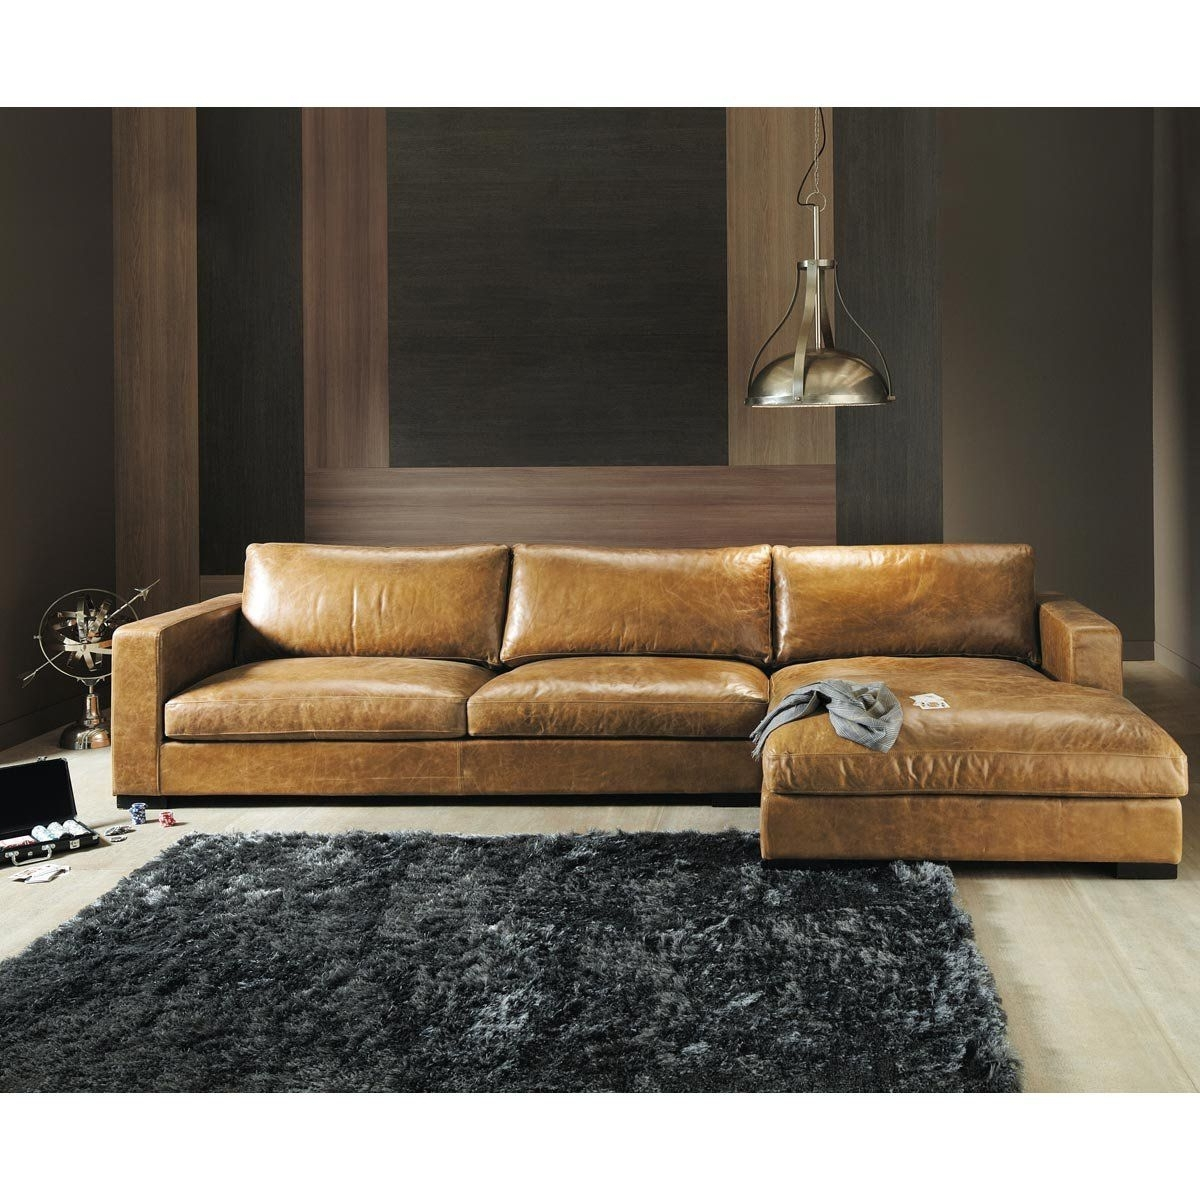 Sofa Seats, Leather Throughout Best And Newest Vintage Sectional Sofas (View 18 of 20)